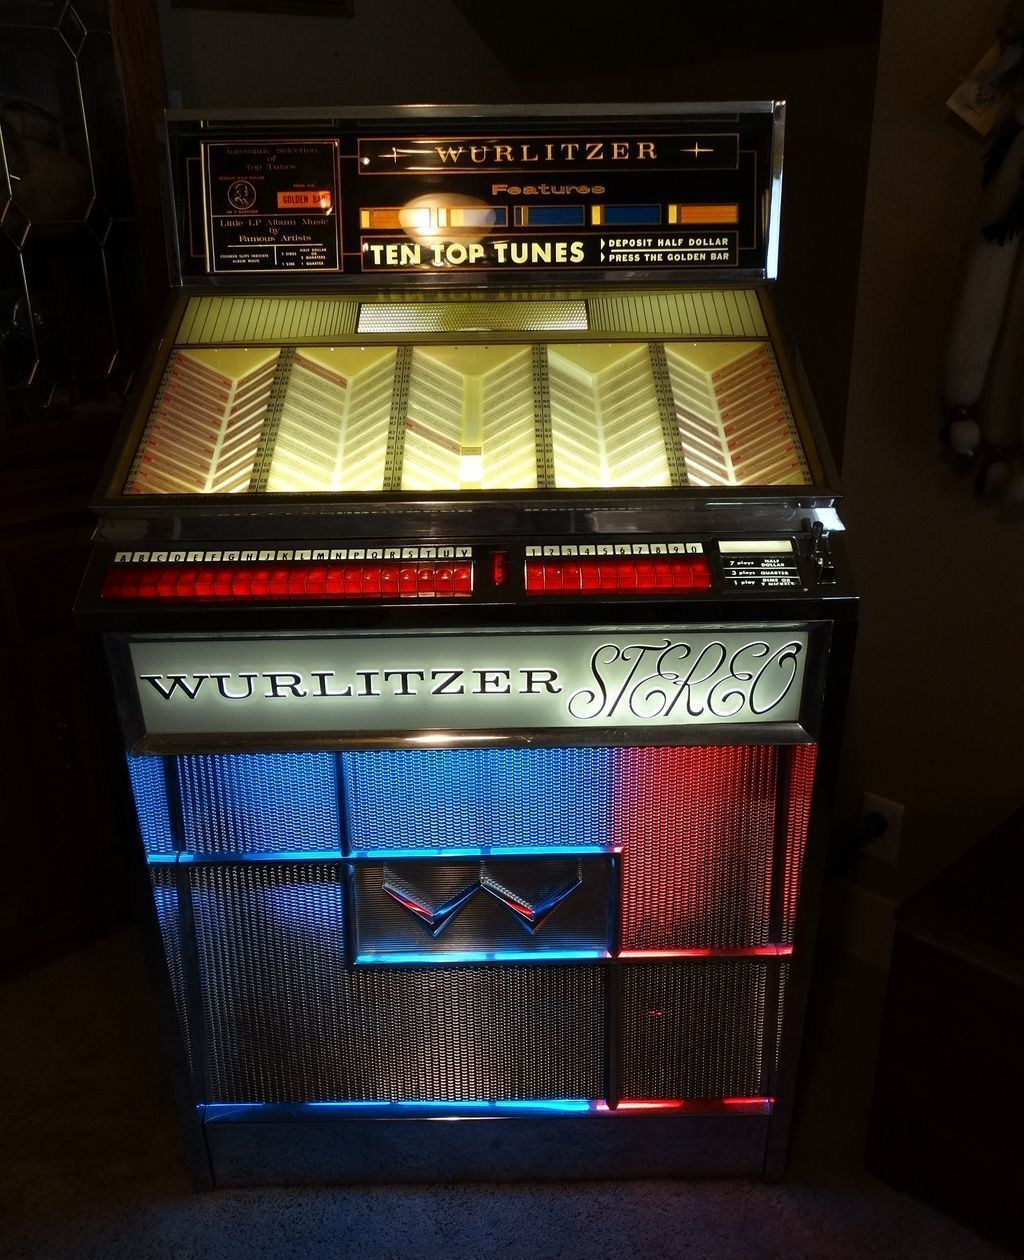 Rare Classic 1963 Wurlitzer Jukebox Model 2700 Multi Selector Stereo Phonograph Professionally Restored and Chromed M/NM